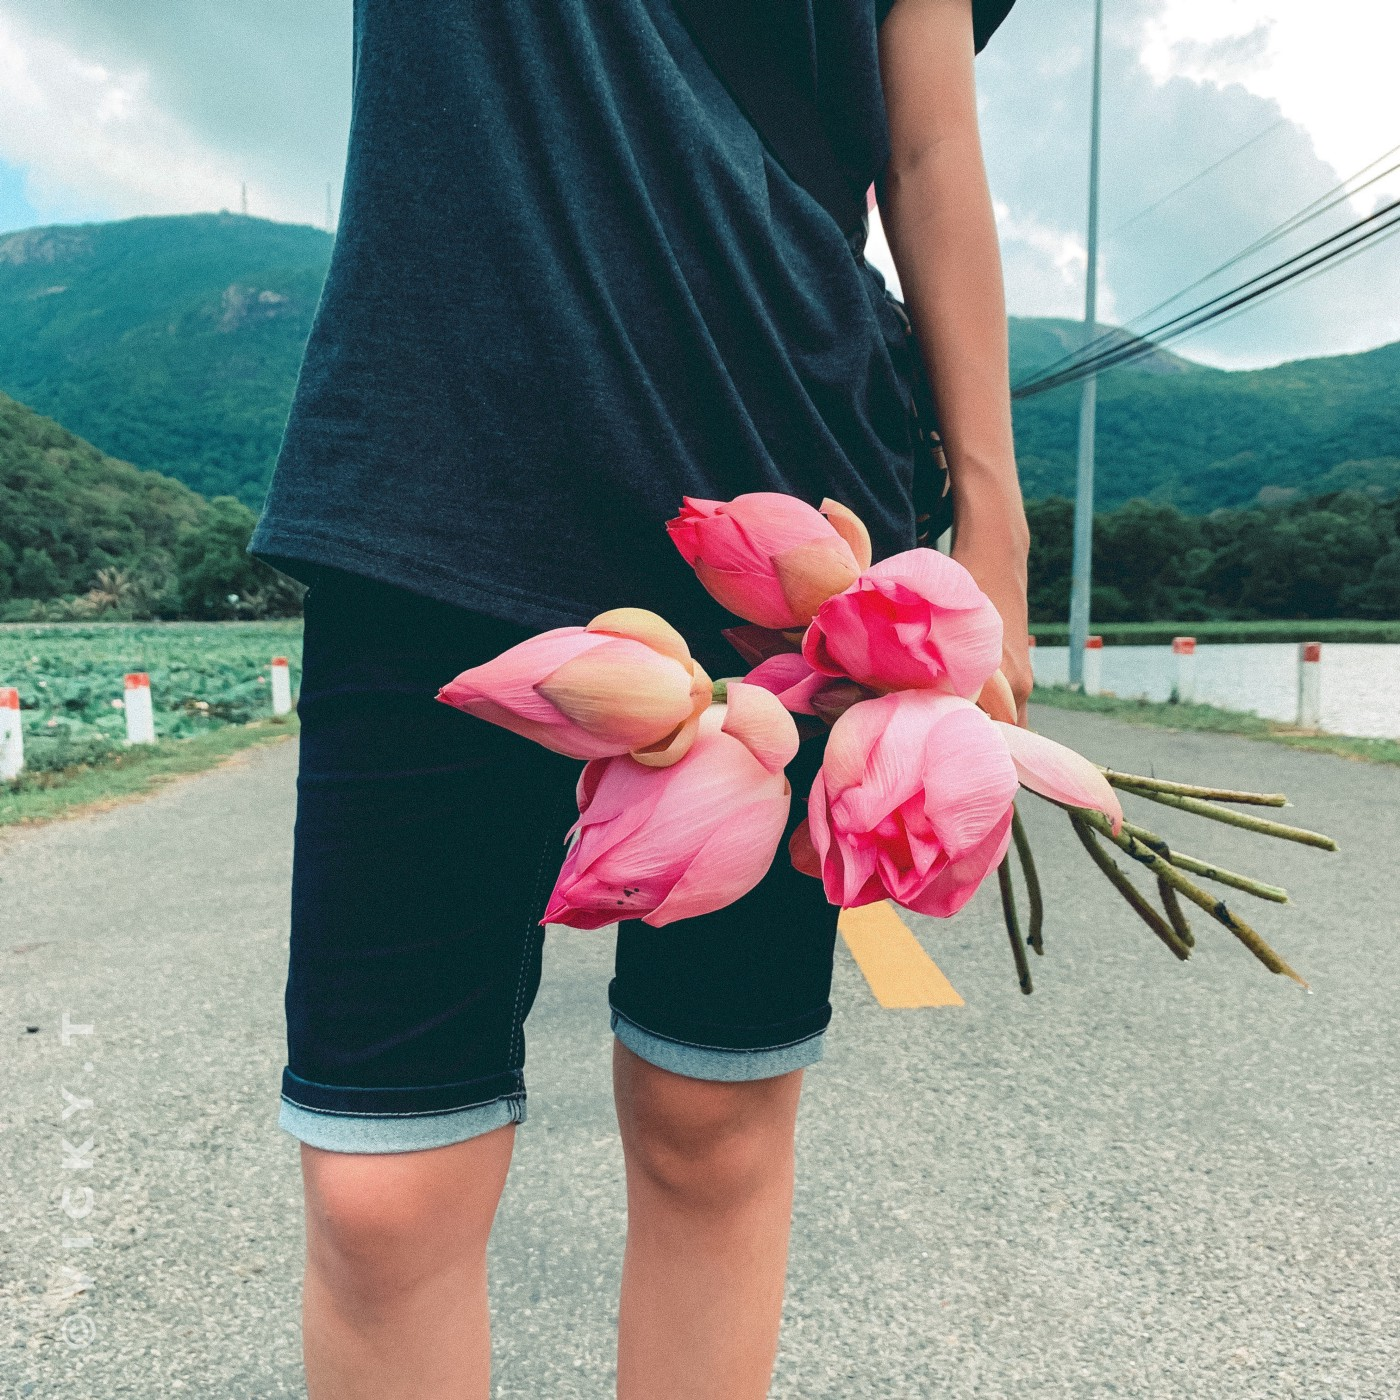 Photo of a woman holding a bunch of roses. The shot focuses on the pink roses and just shows the woman's midsection. Mountains in the background.